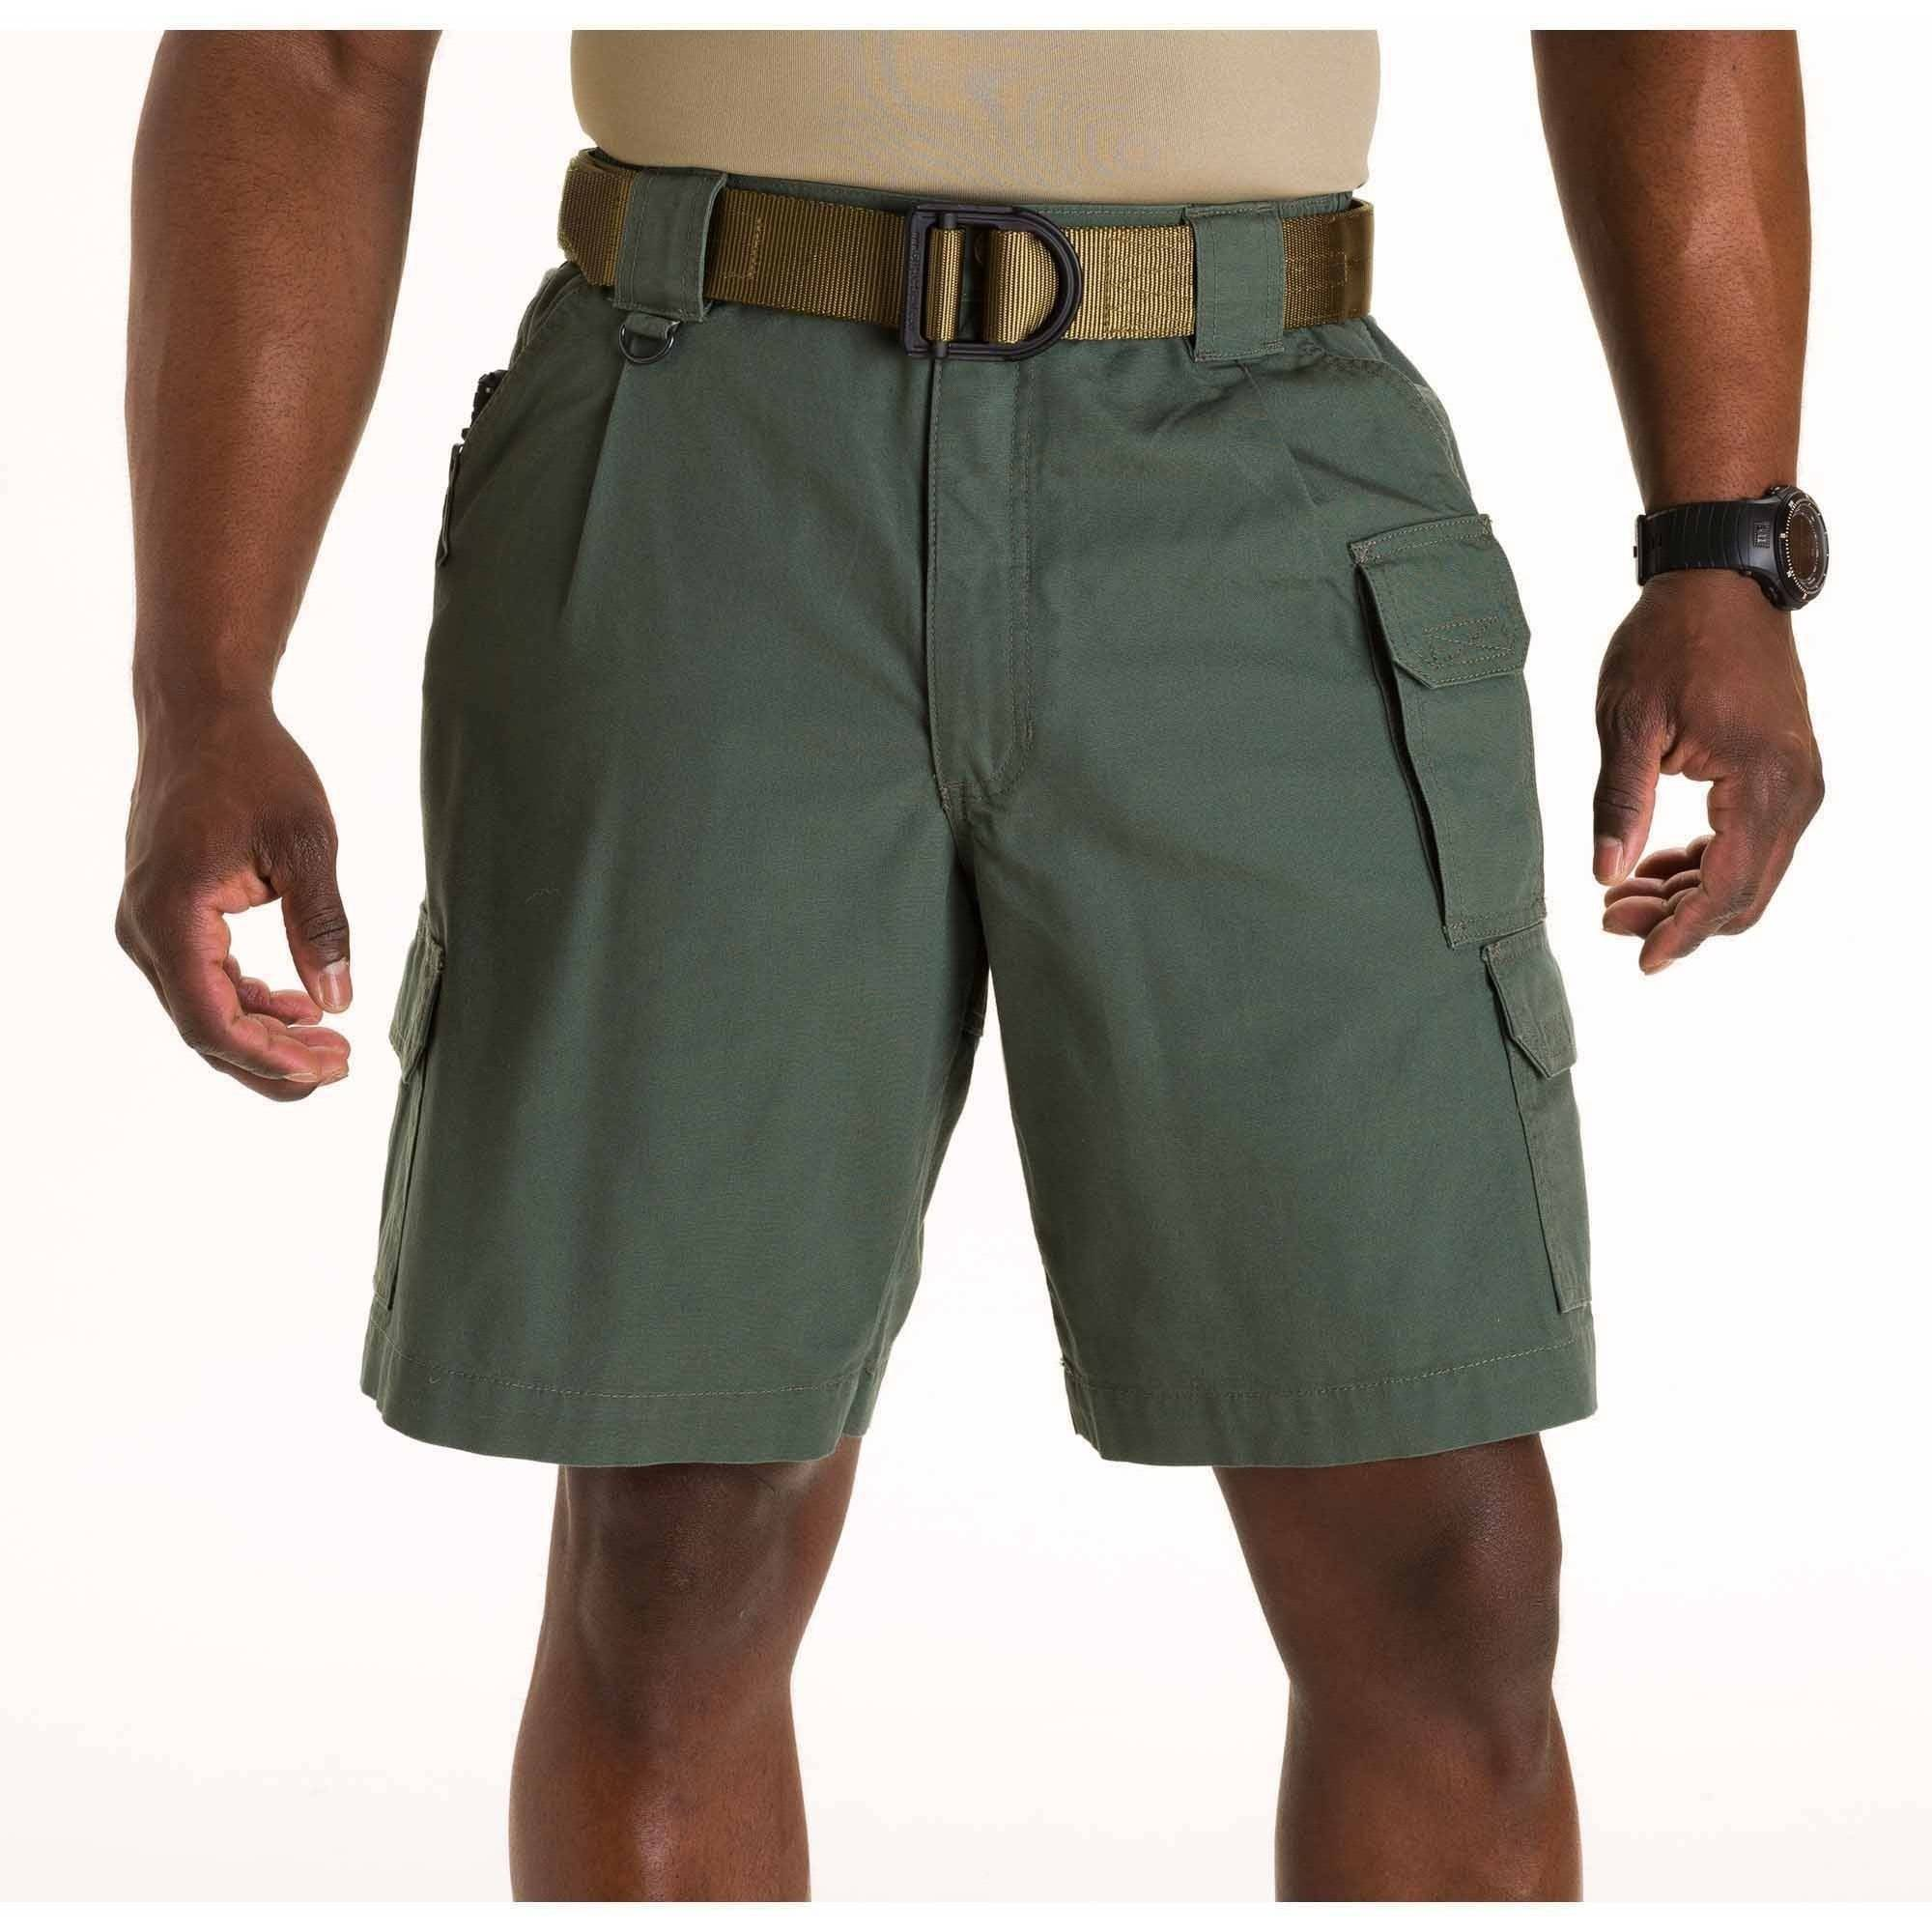 Men's Cotton Tactical Shorts, OD Green